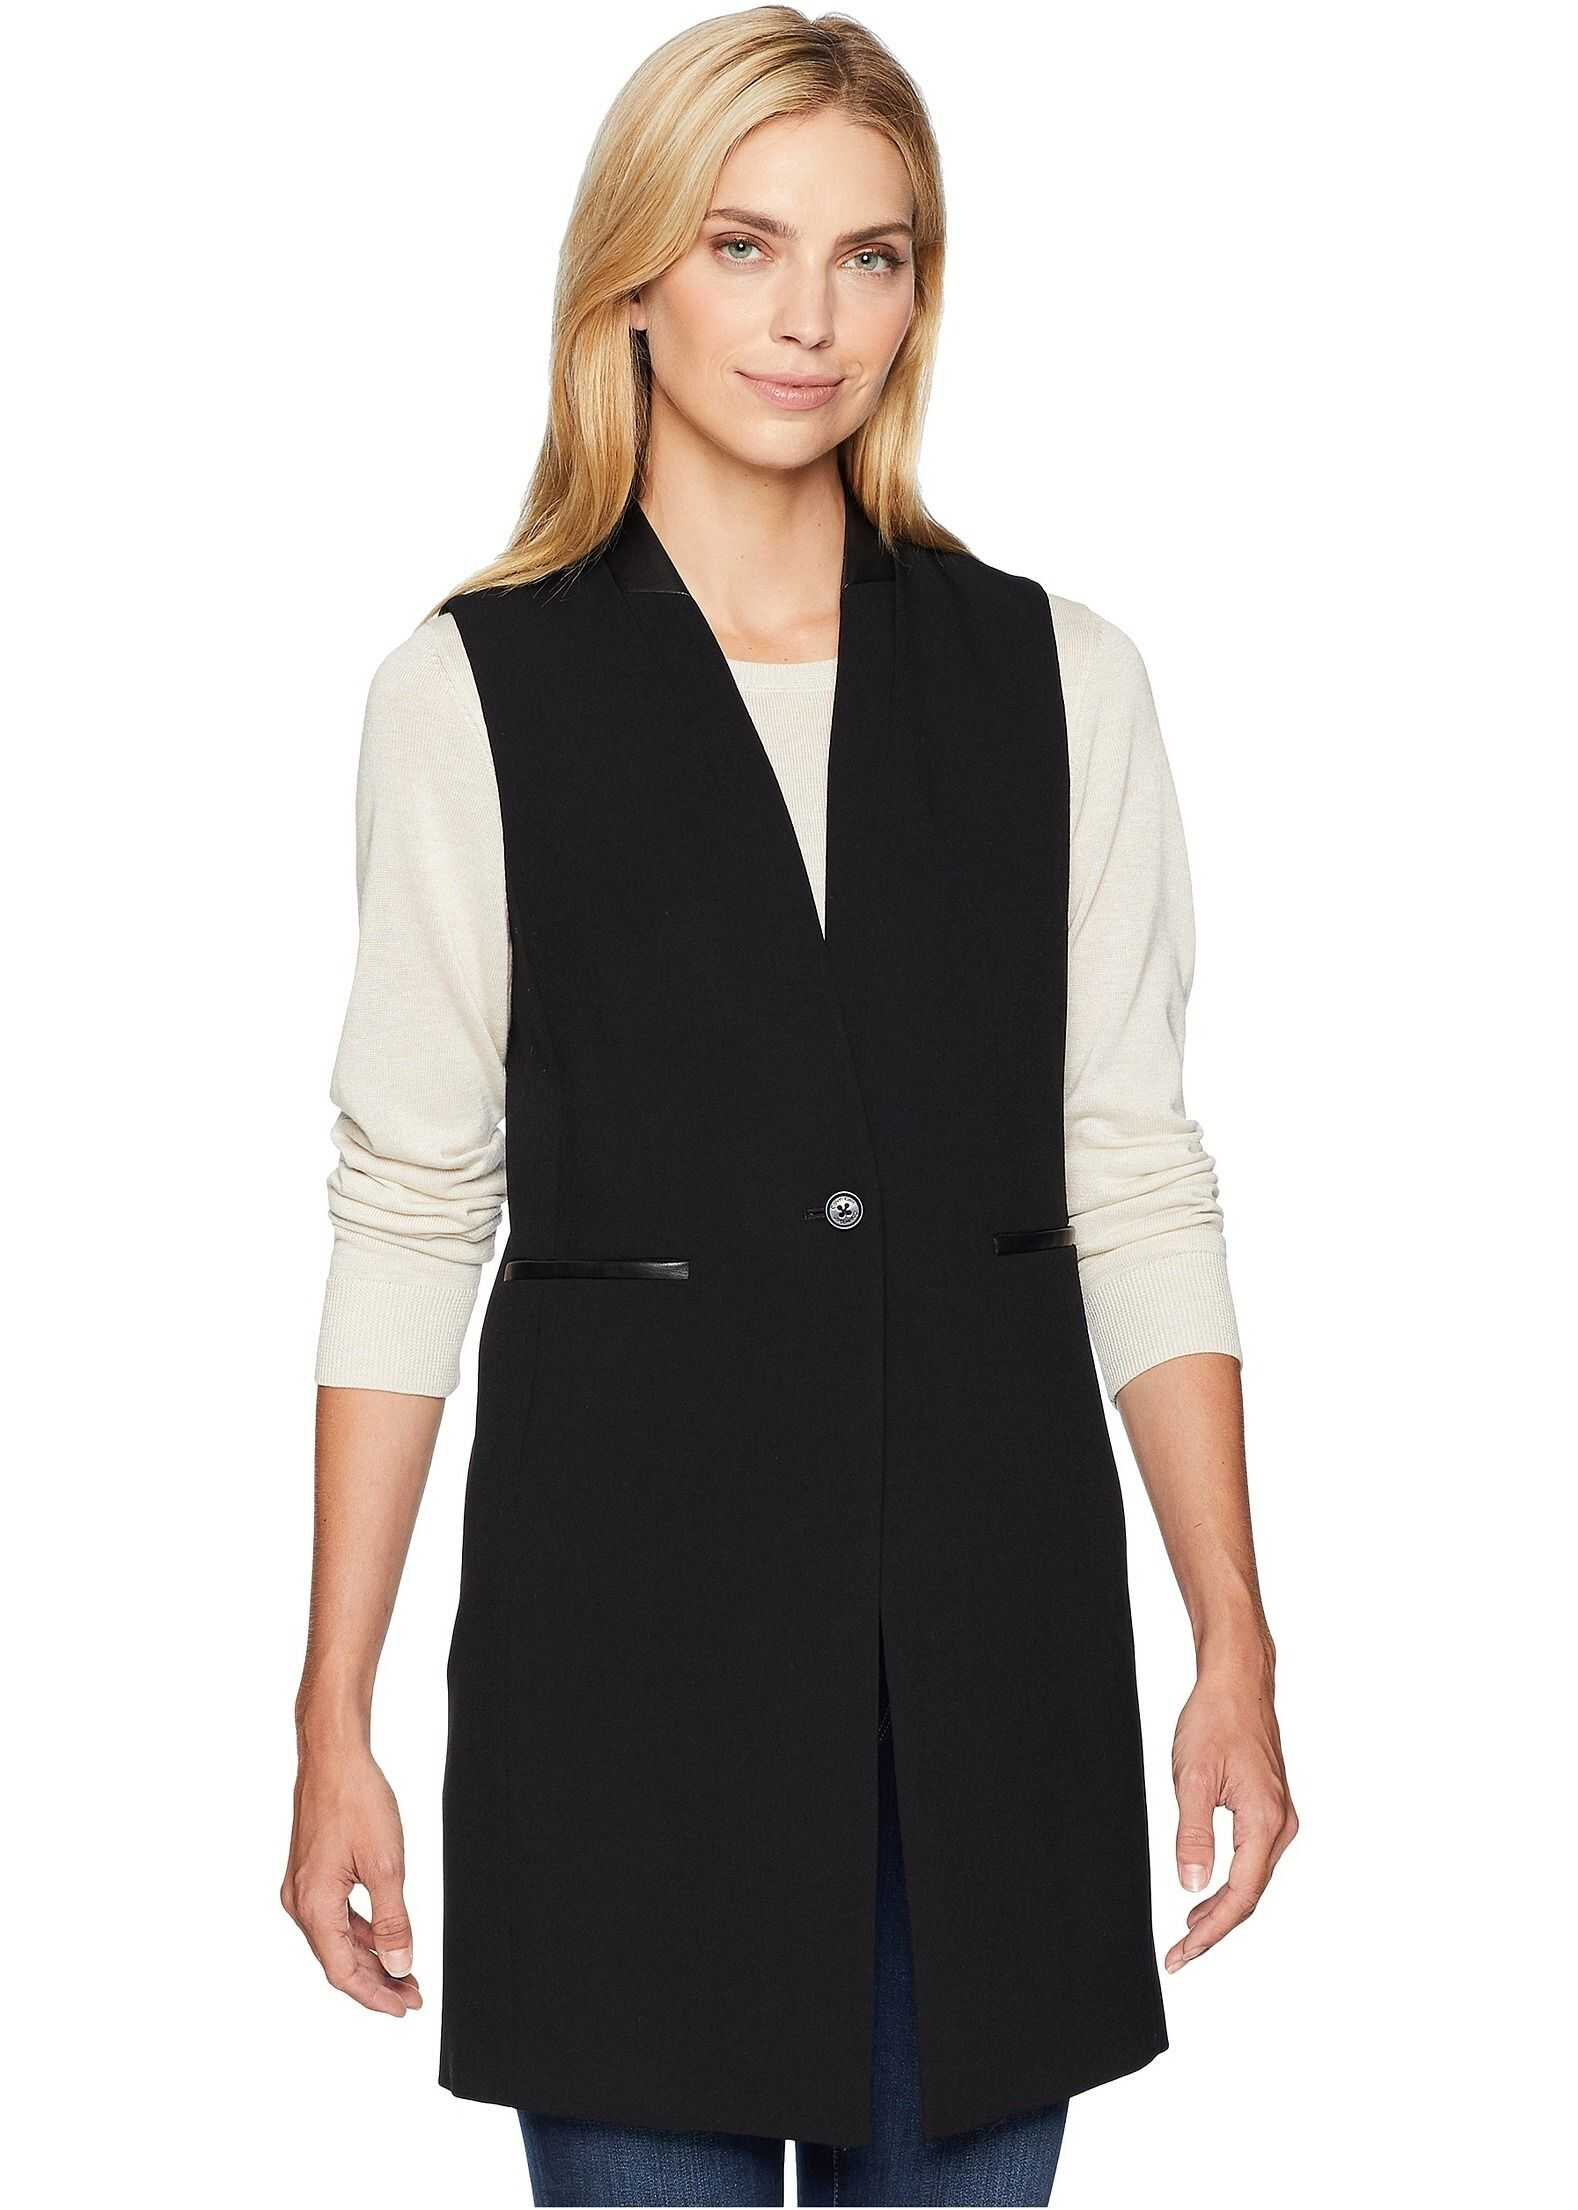 Calvin Klein Lux One-Button Vest with Faux Leather Black